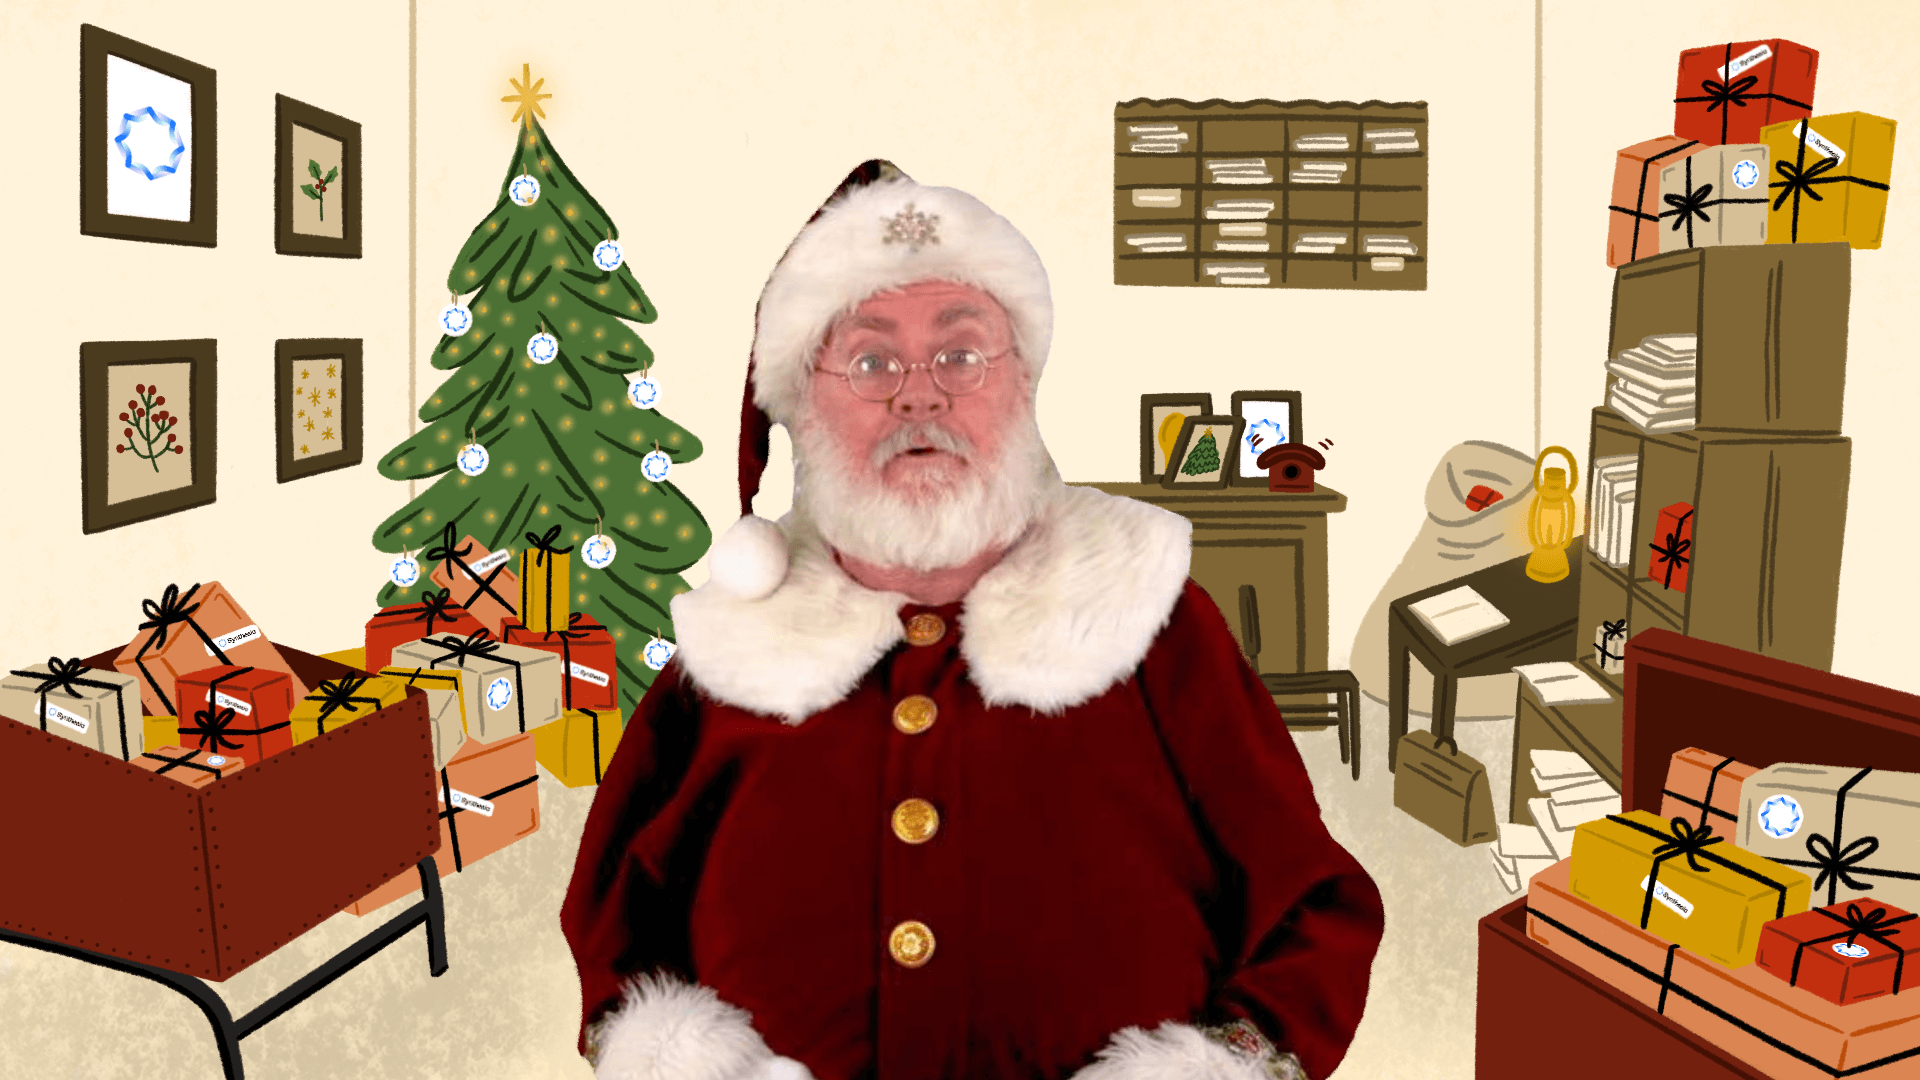 Santa video background in the office